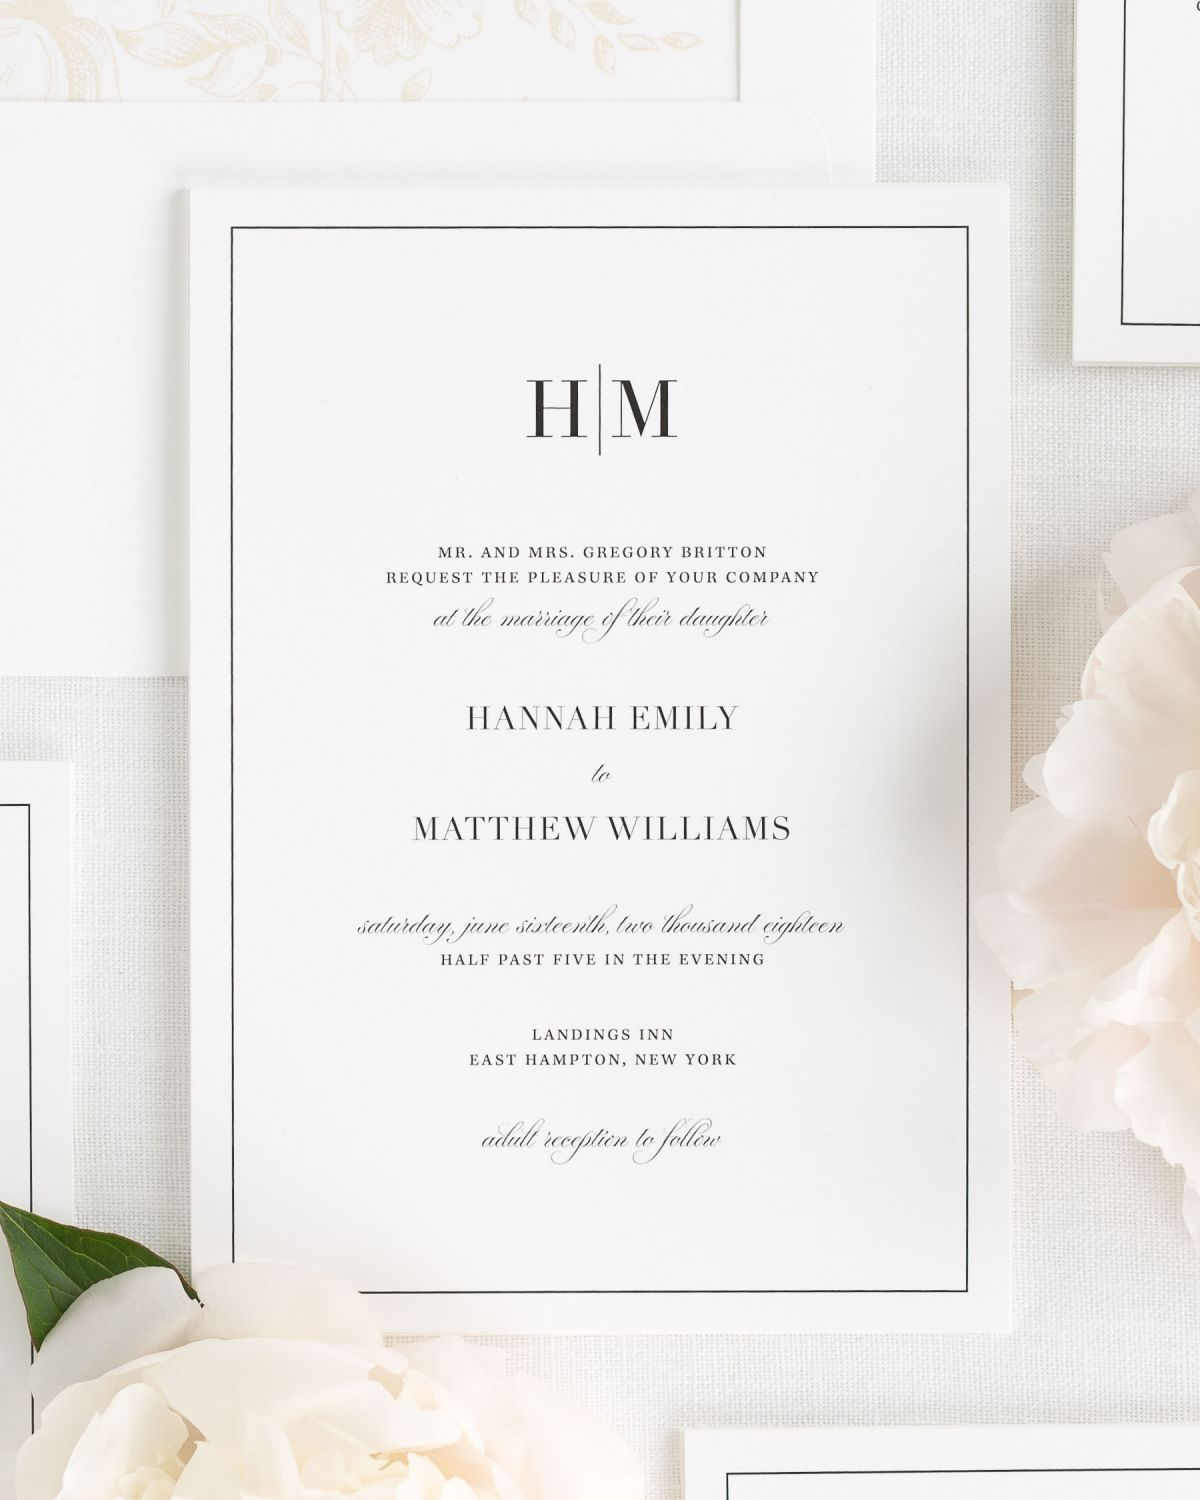 Modern Wedding Invitations WEDDING INVITATION CARDS